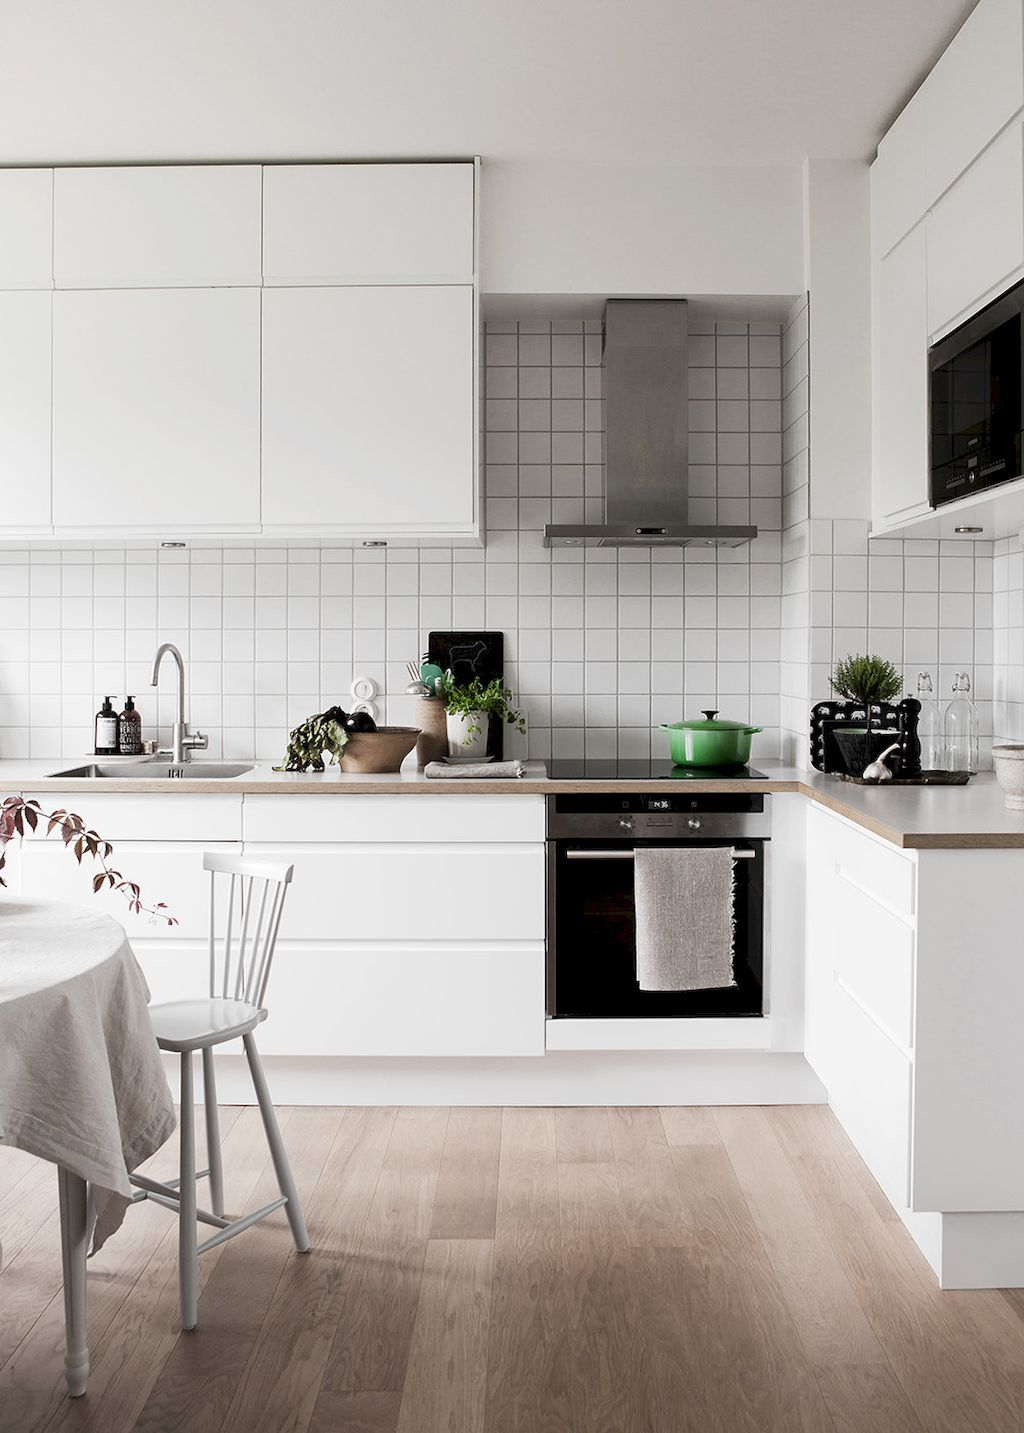 Awesome 65 Gorgeous Modern Scandinavian Kitchen Design Trends https://homearchite.com/2017/08/31/65-gorgeous-modern-scandinavian-kitchen-design-trends/